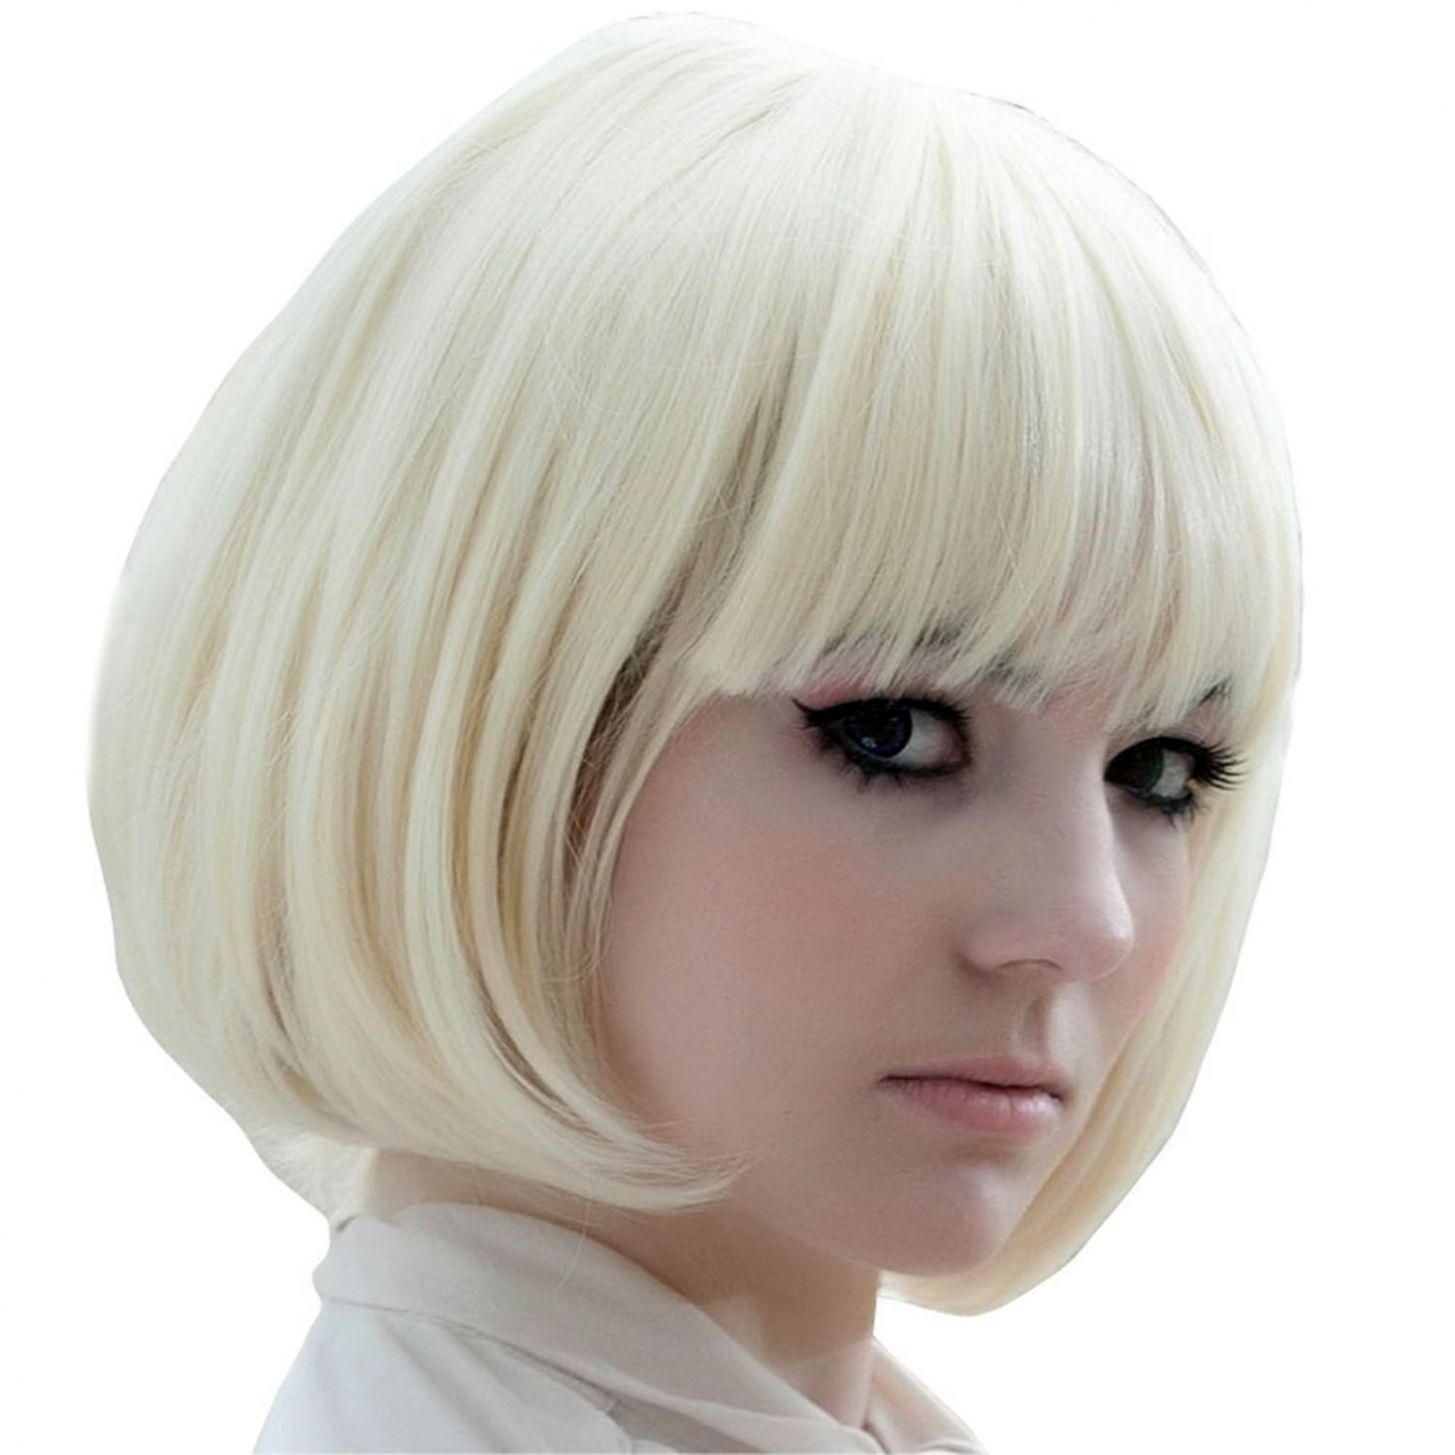 Ladies' Cosplay Fluffy Short Straight BOB Hair Extensions Wig for ...